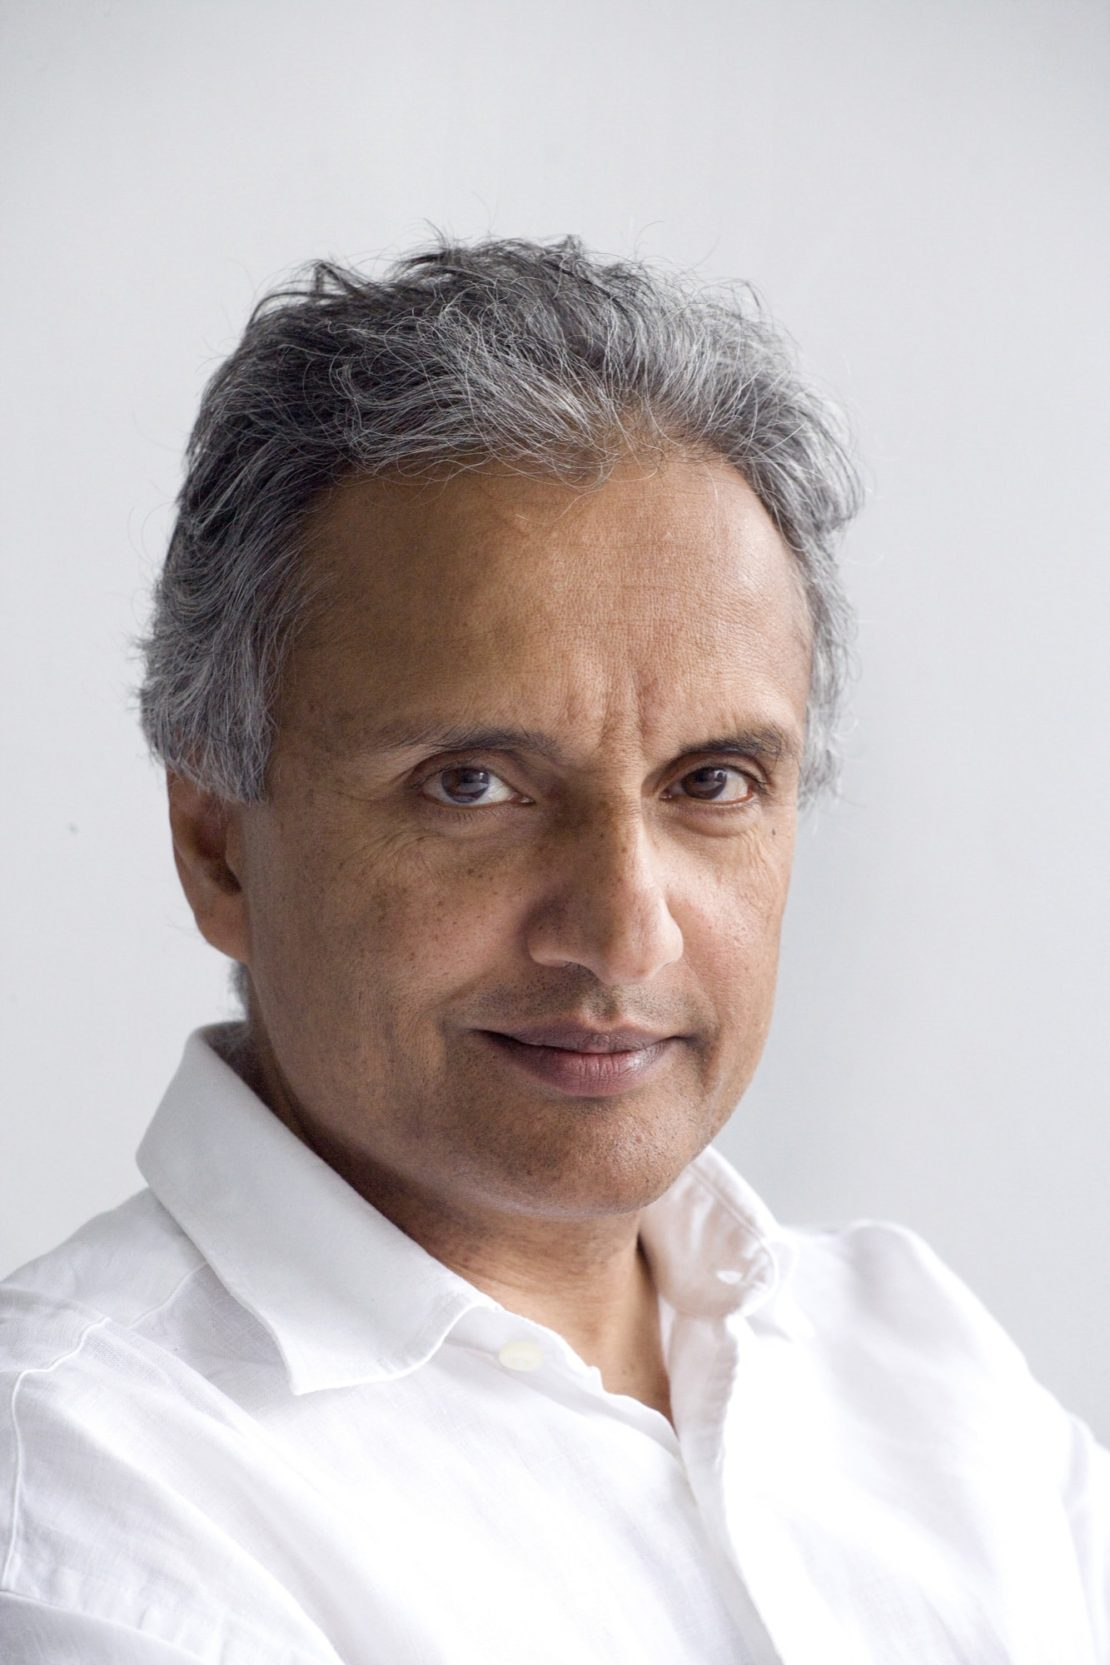 Sunand Prasad named one of Britain's Top 100 environmentalists